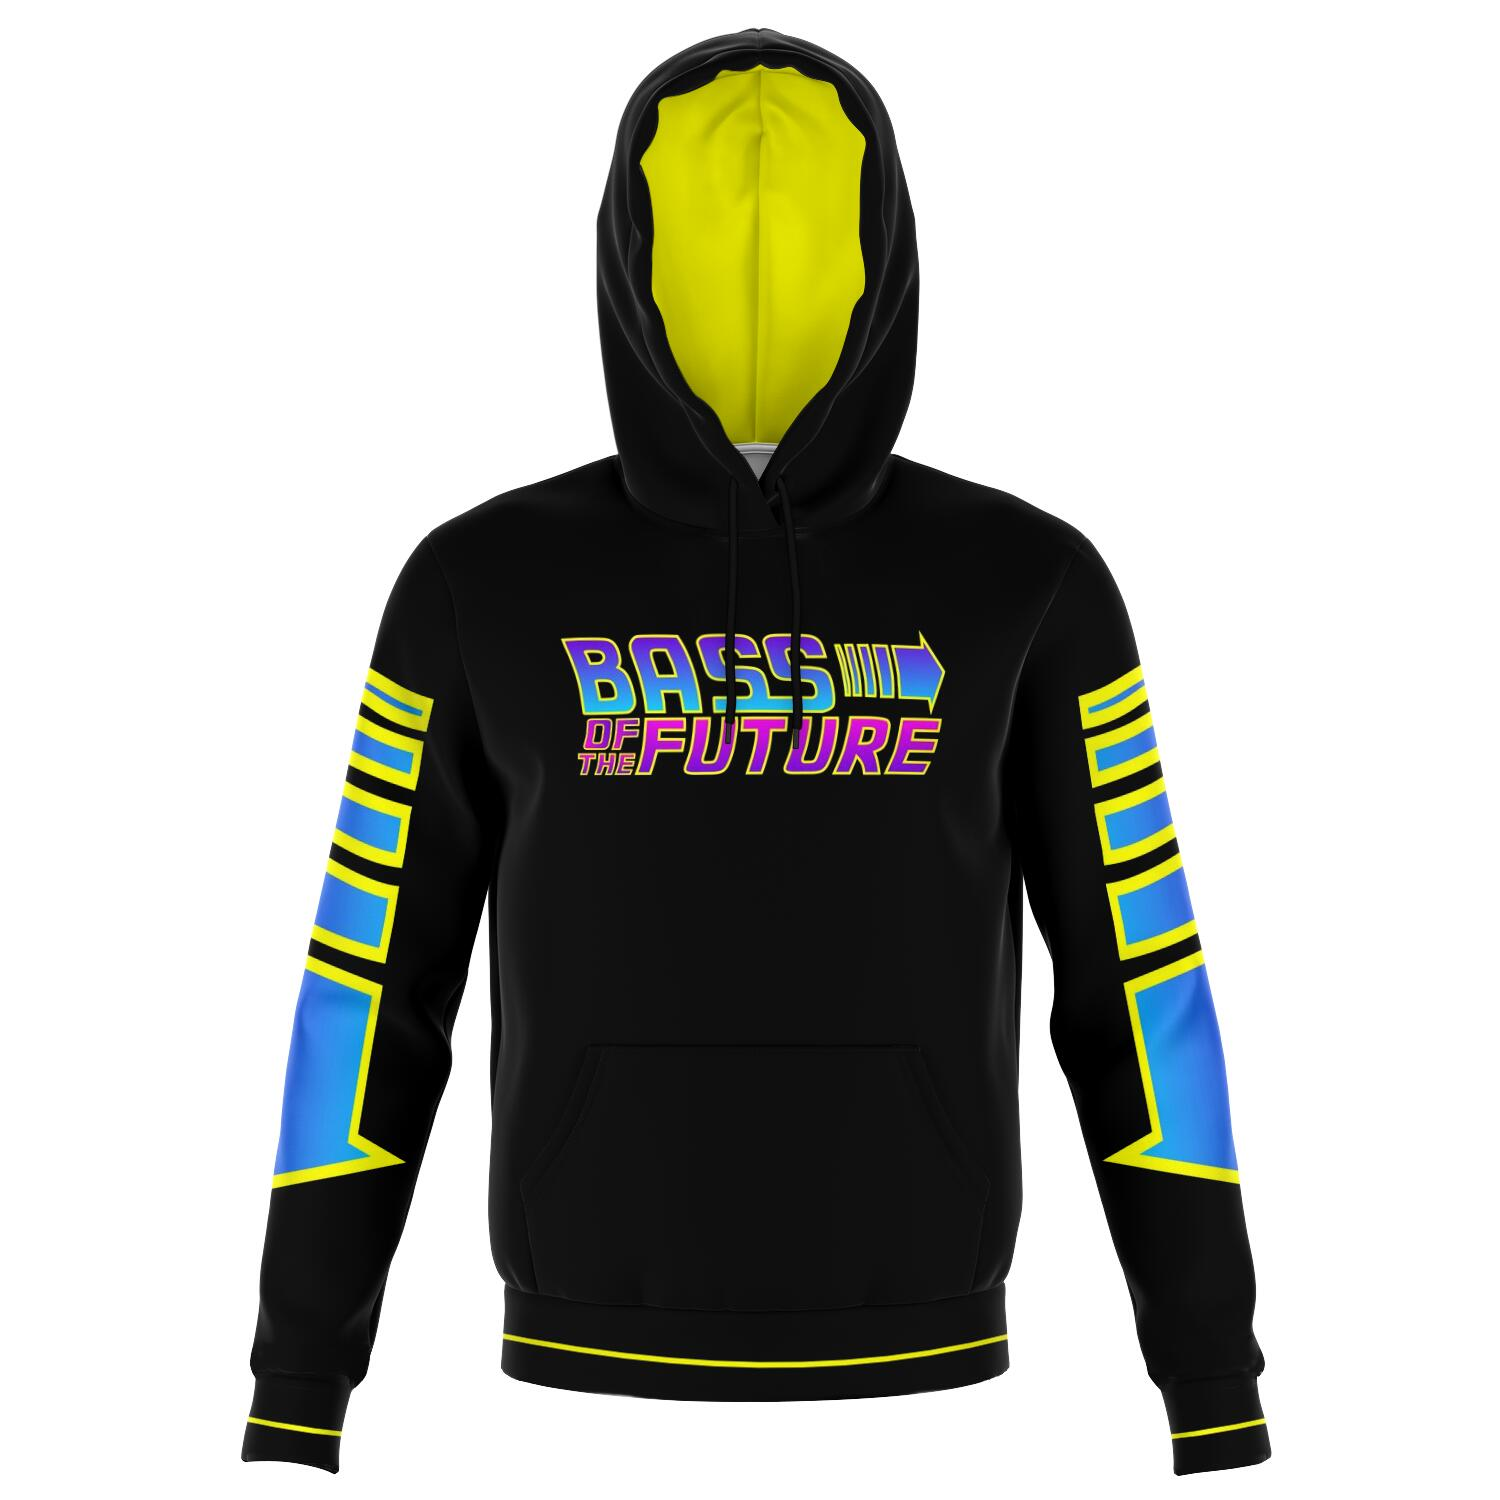 Bass of the Future Hoodie